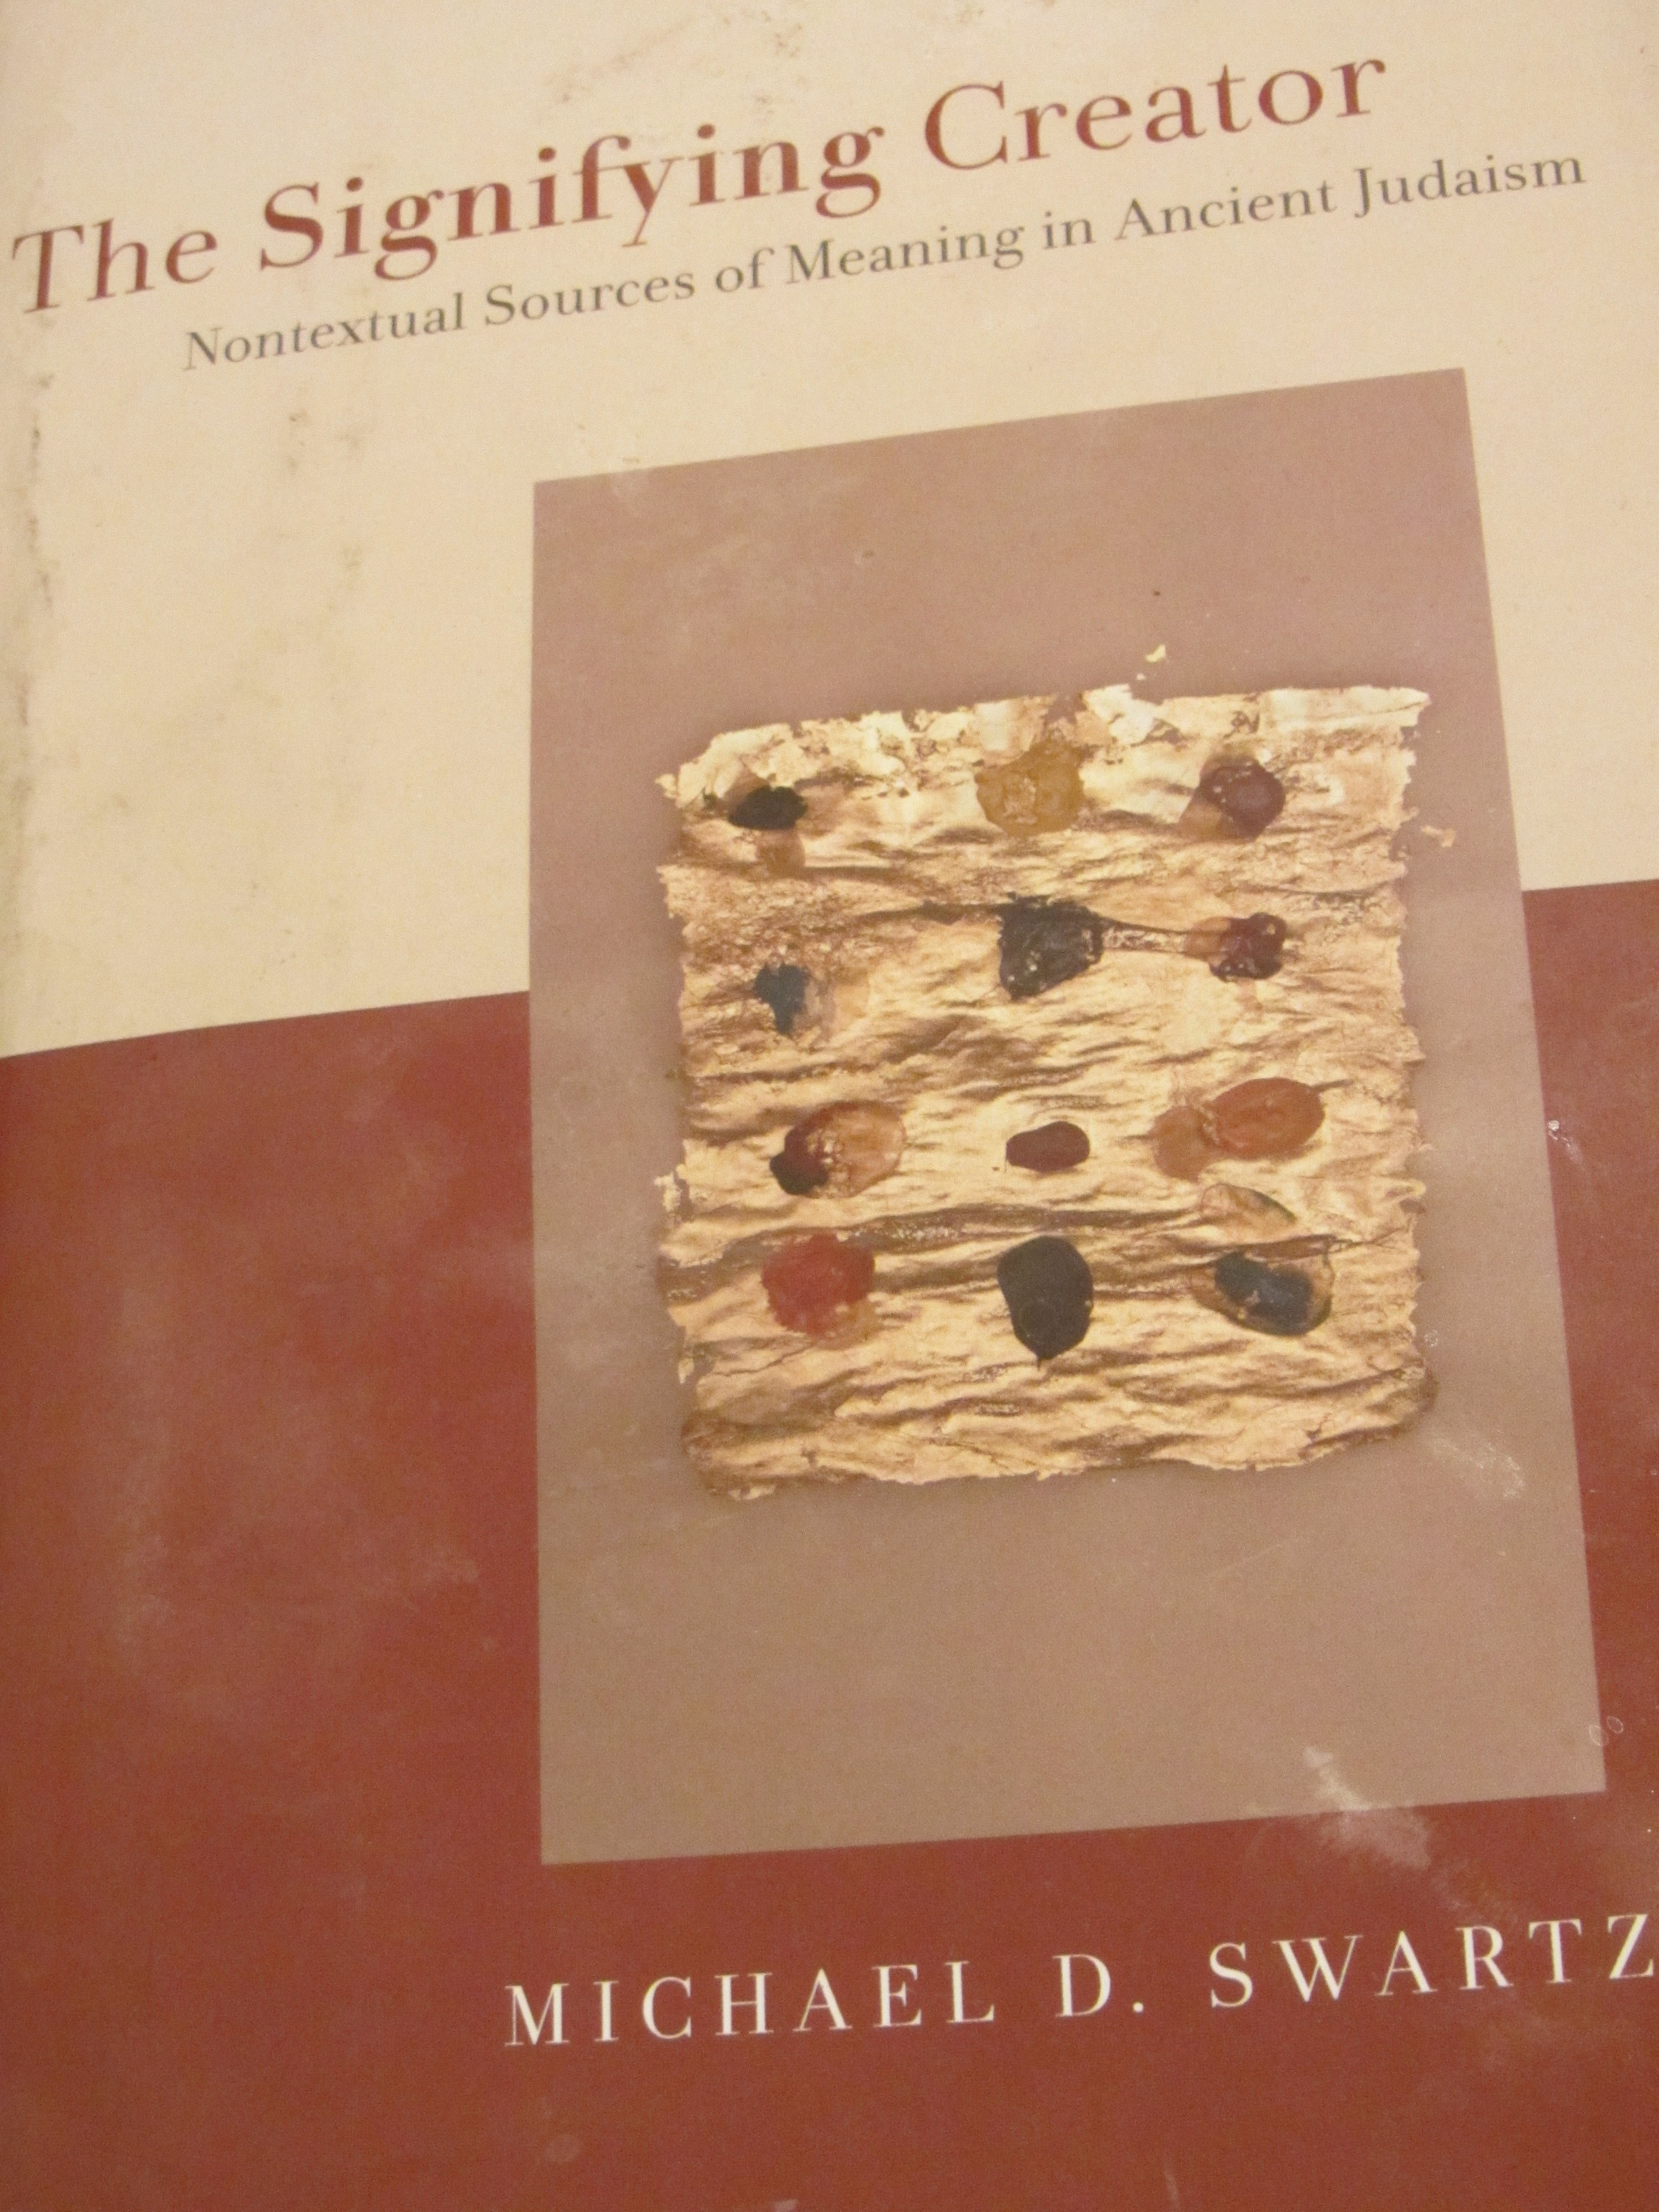 ancient essay judaism modern Other festivals rehearse ancient events, connecting modern jews to the ancient   a collection of essays about jewish cultures around the world opens with the.